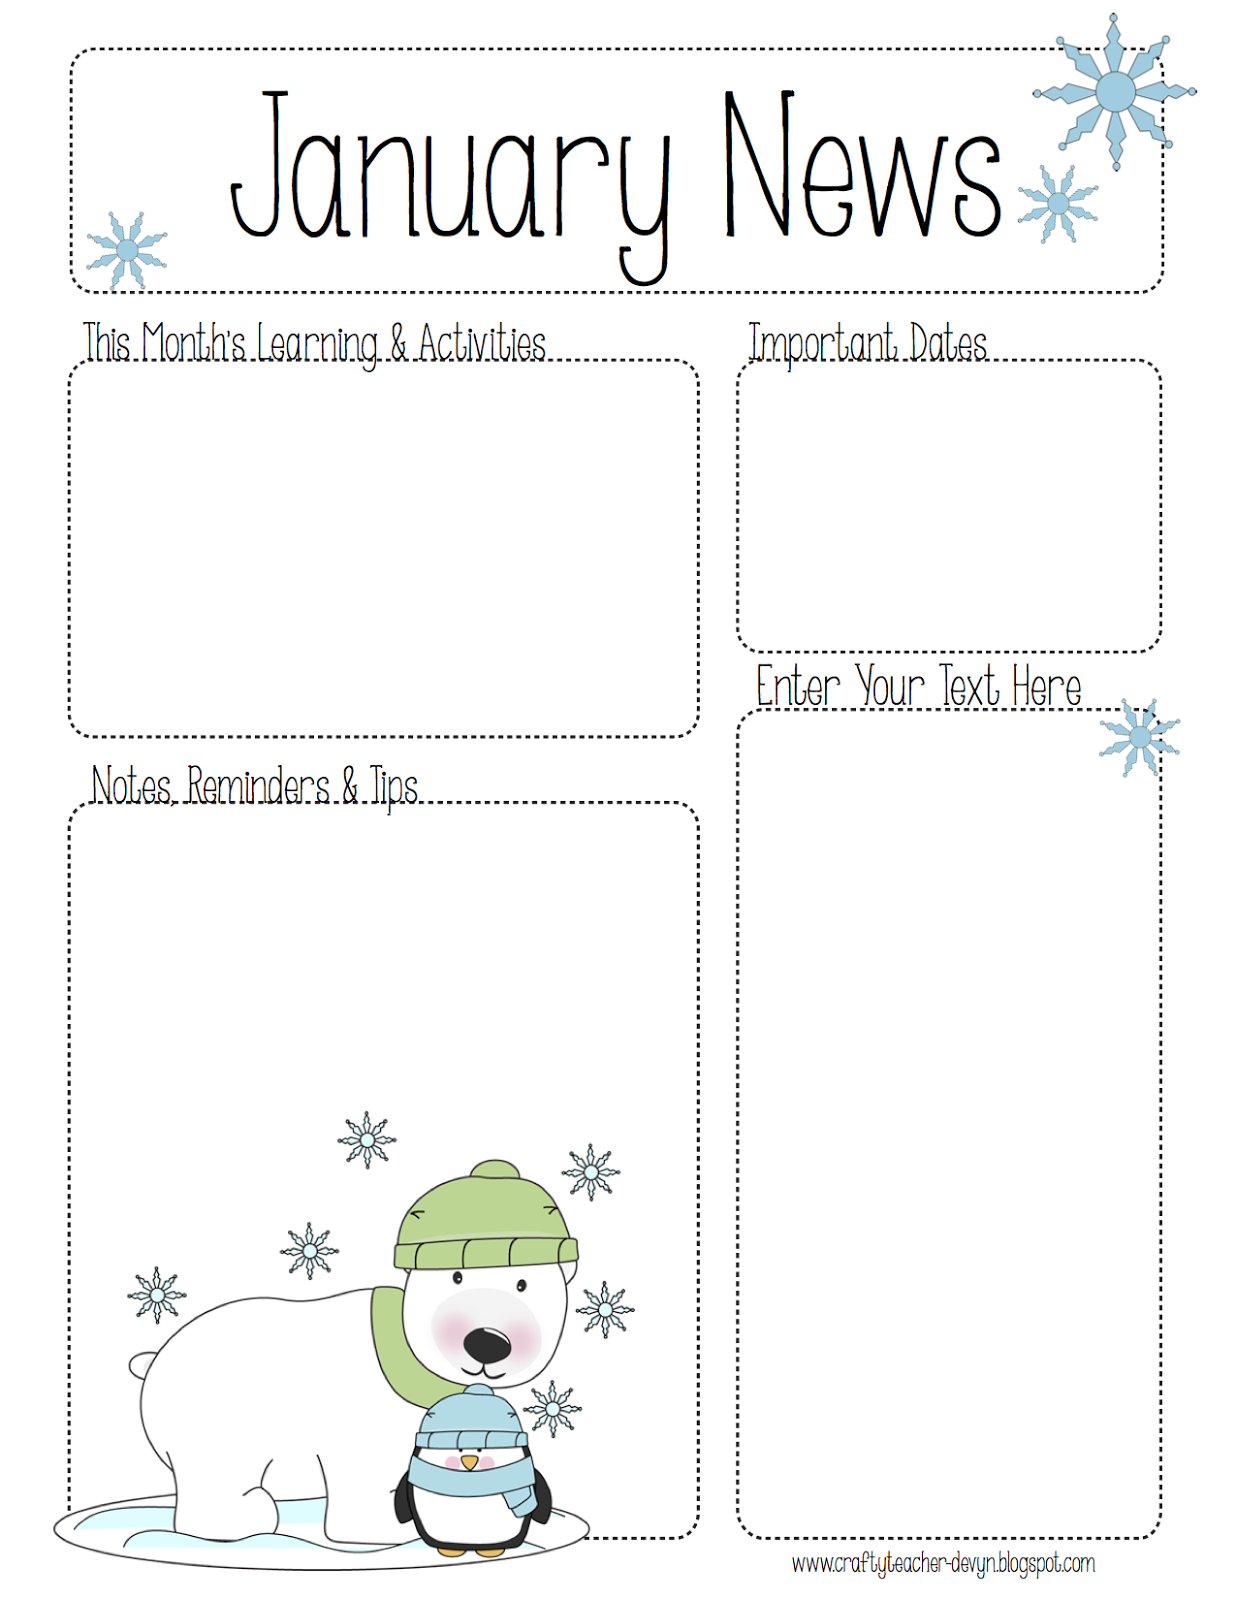 NewsletterJanuary October Pre Newsletter Template Editable on downloadable digital, for student, google free, elementary school, free community, december classroom, owl classroom, monthly classroom, free energy, parent weekly,